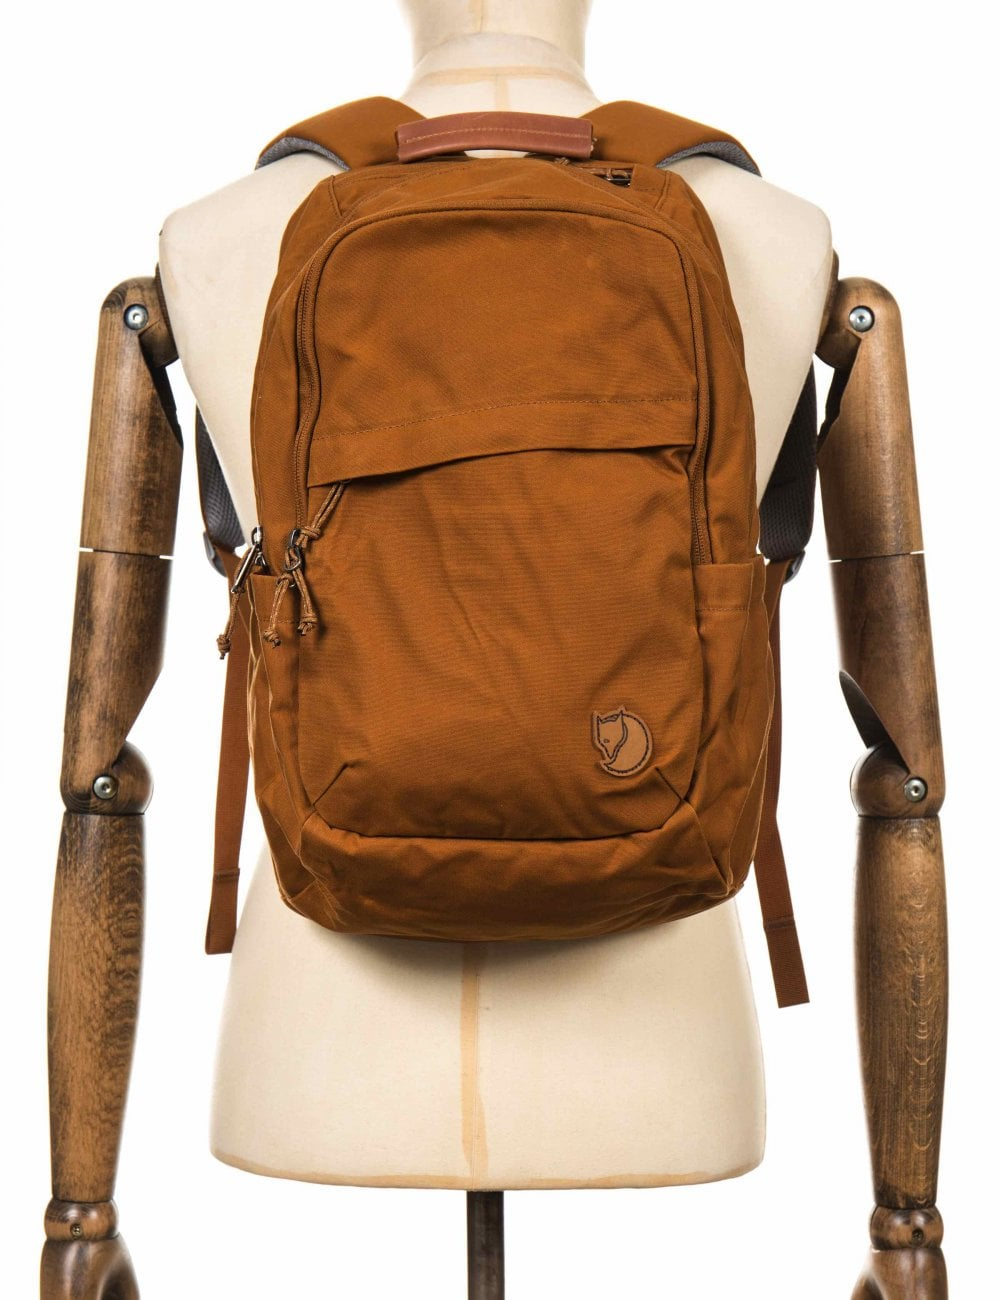 e82c8d8bb Fjallraven Raven 20L Backpack - Chestnut - Accessories from Fat ...